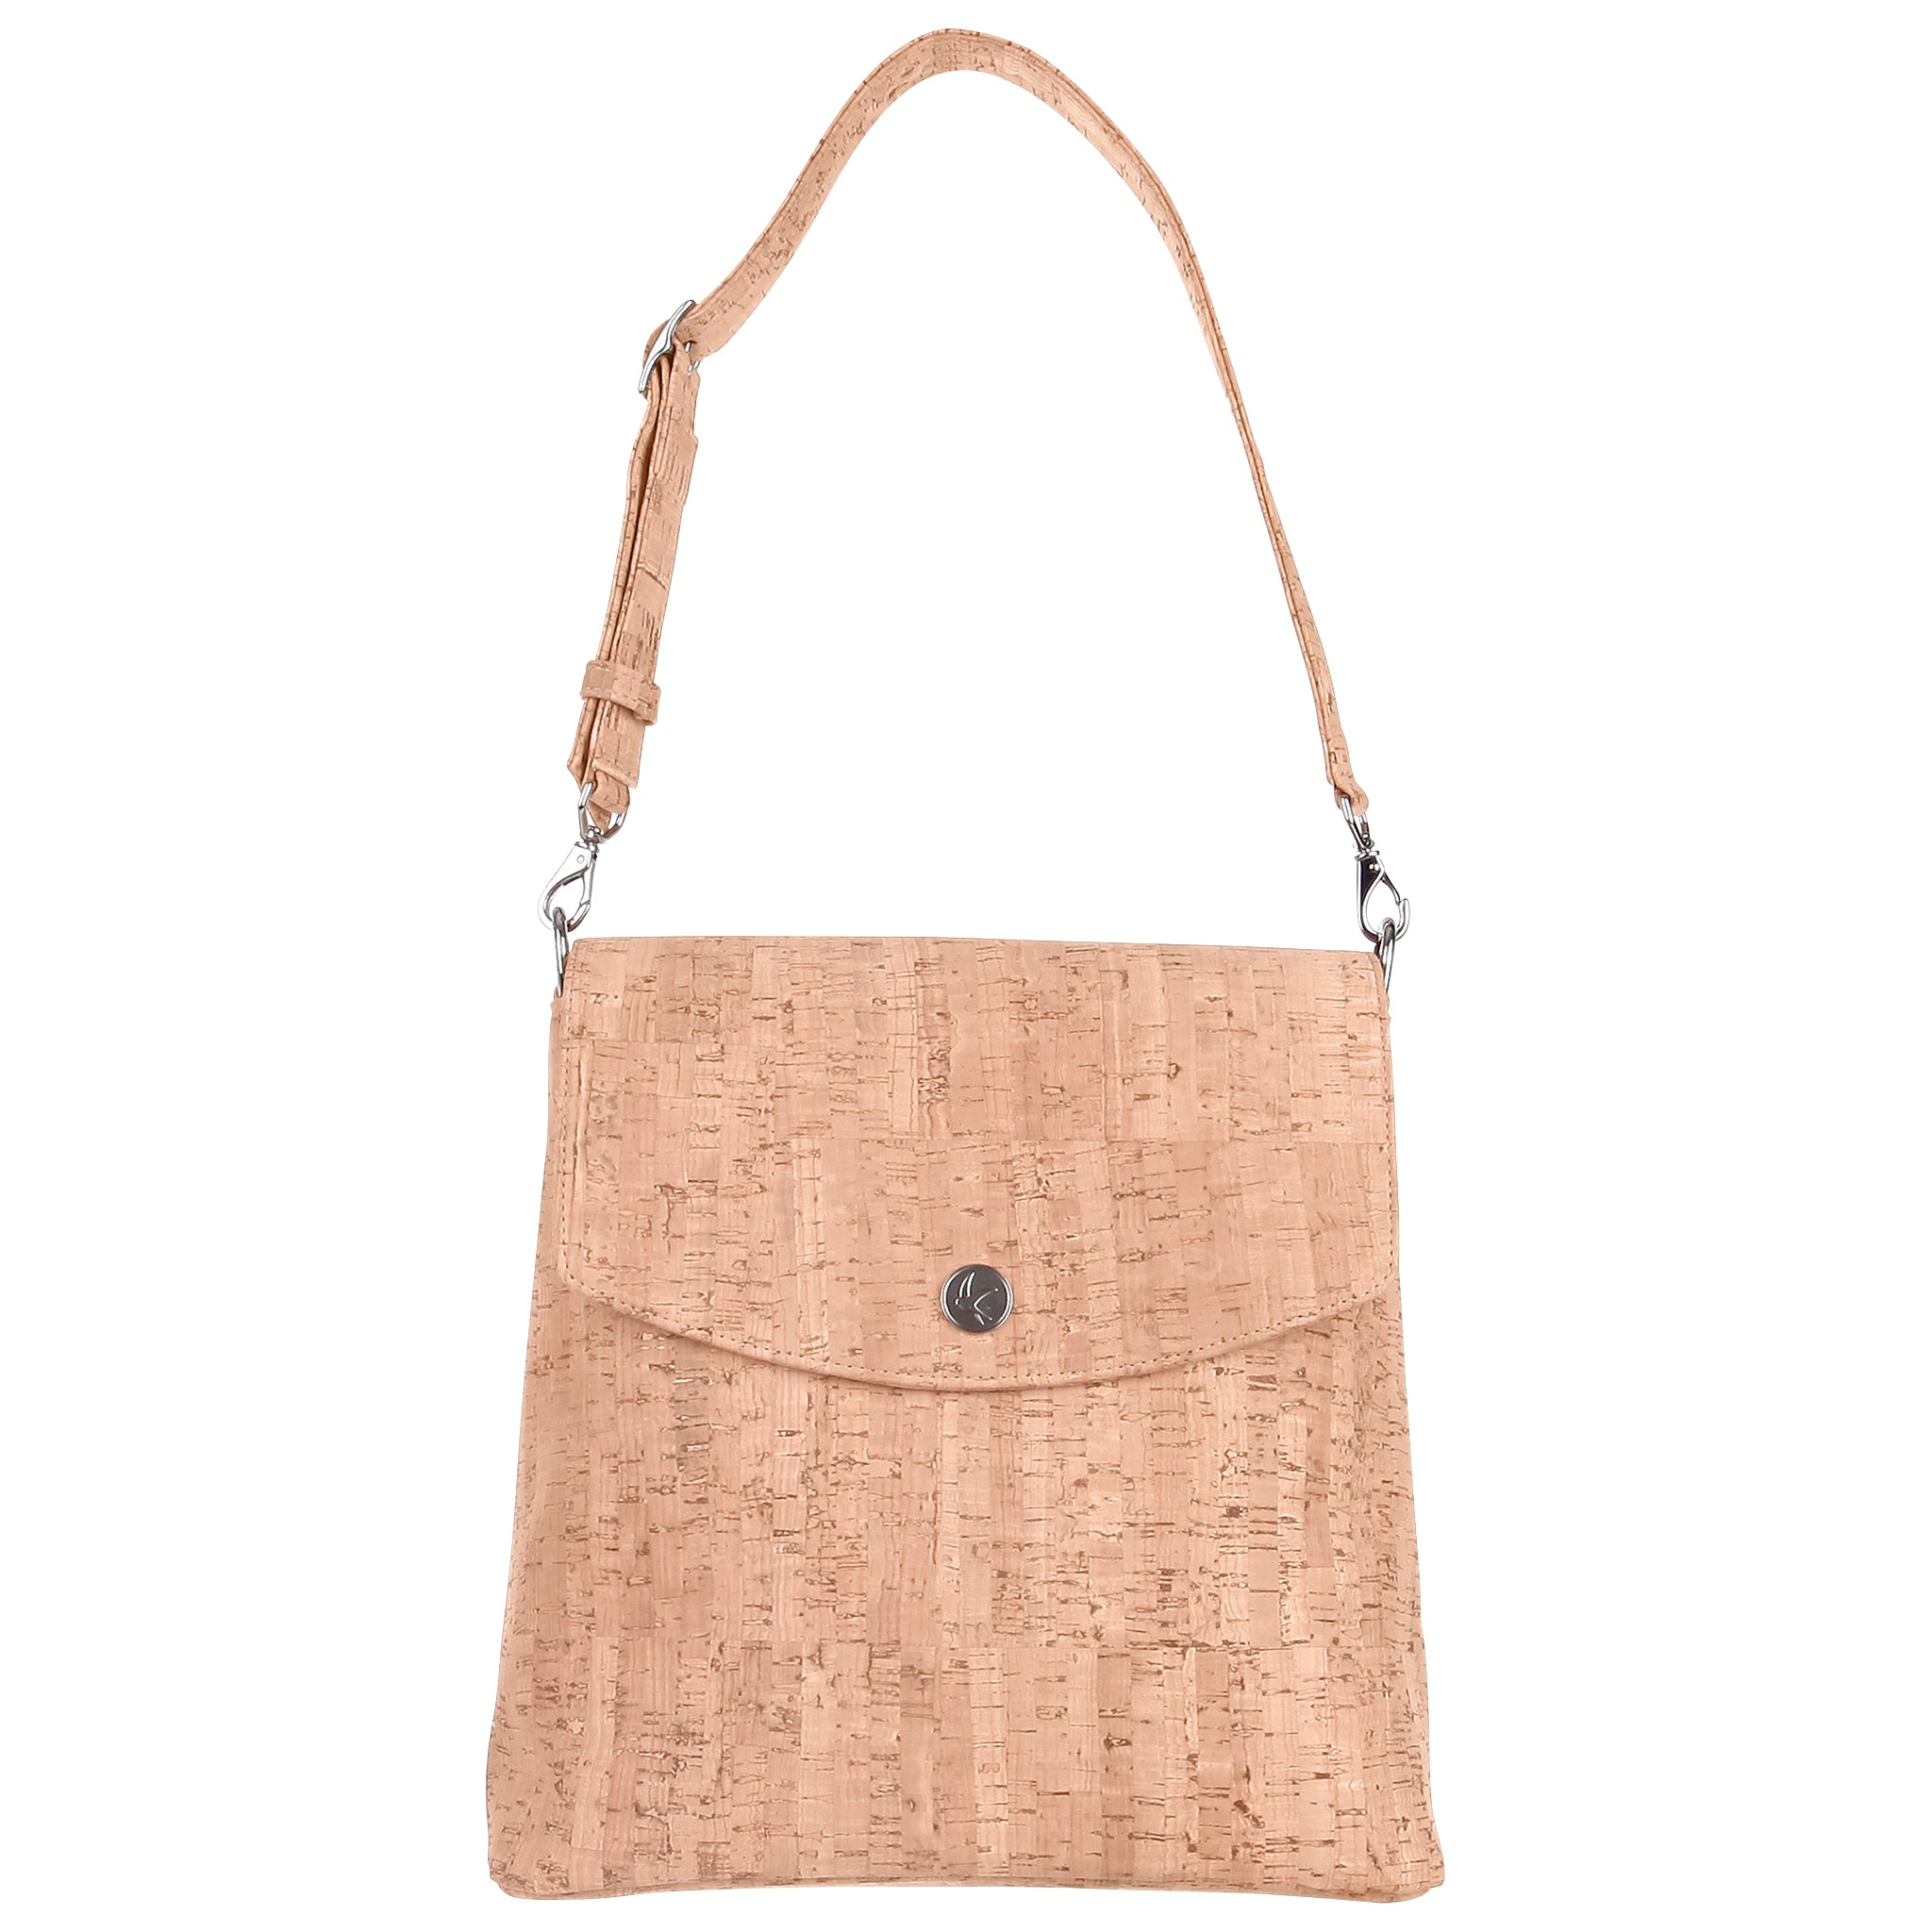 Vegan Cork Backpack Purse, Gemma, Svala